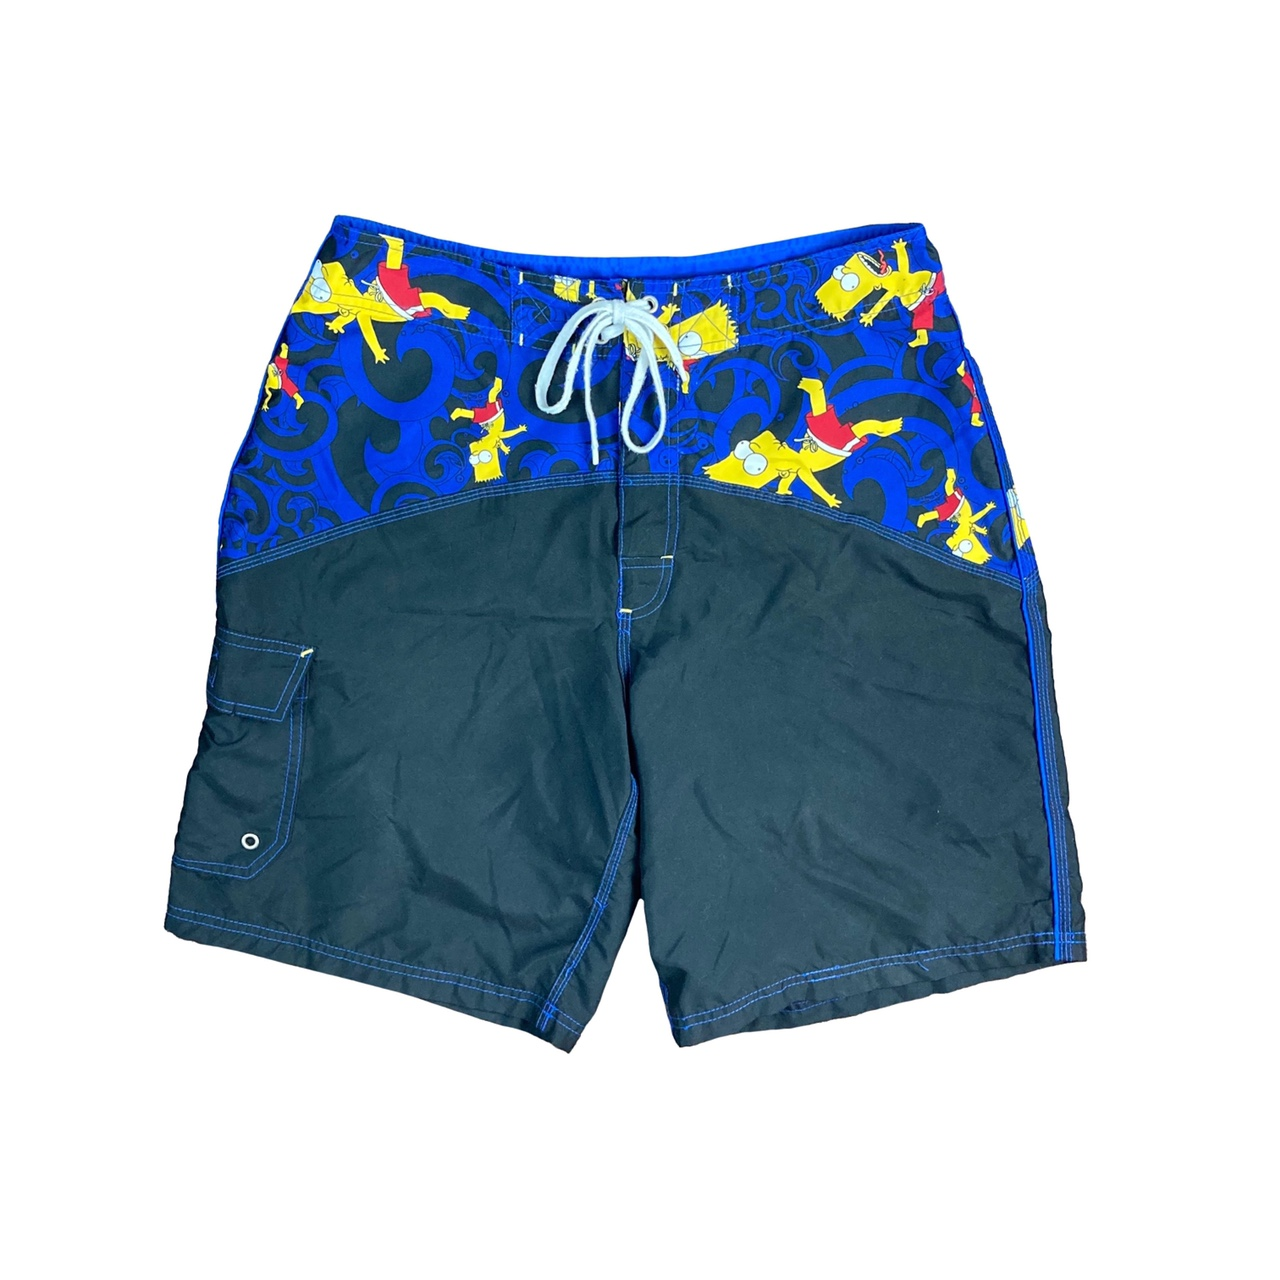 Product Image 1 - 2004 The Simpsons Bart Shorts